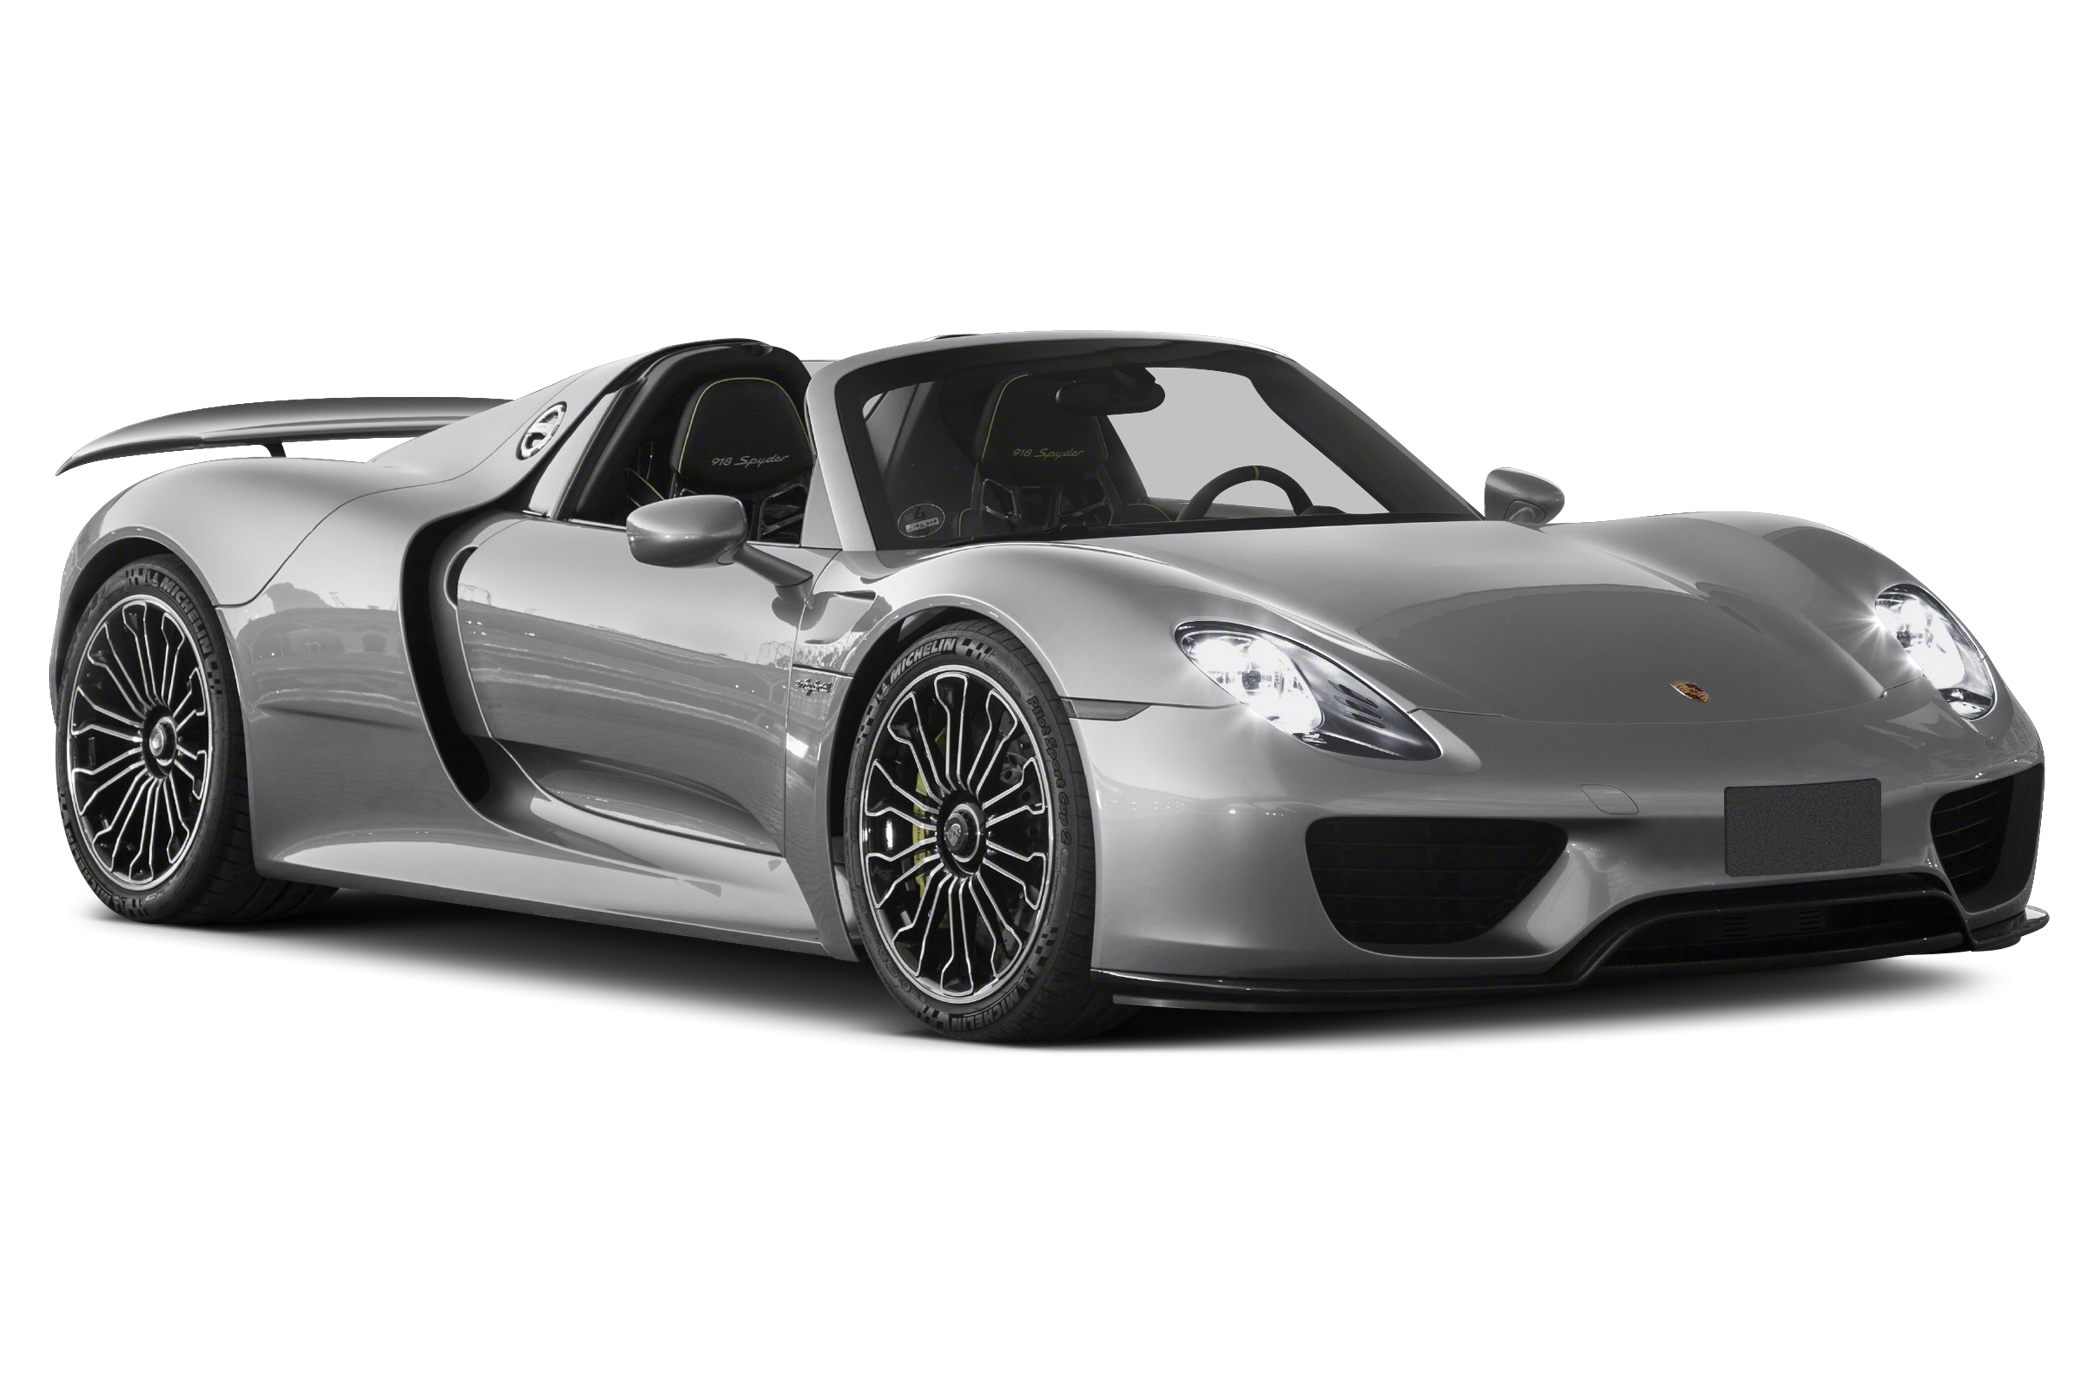 Porsche 918 Spyder Concept Photo Gallery Autoblog